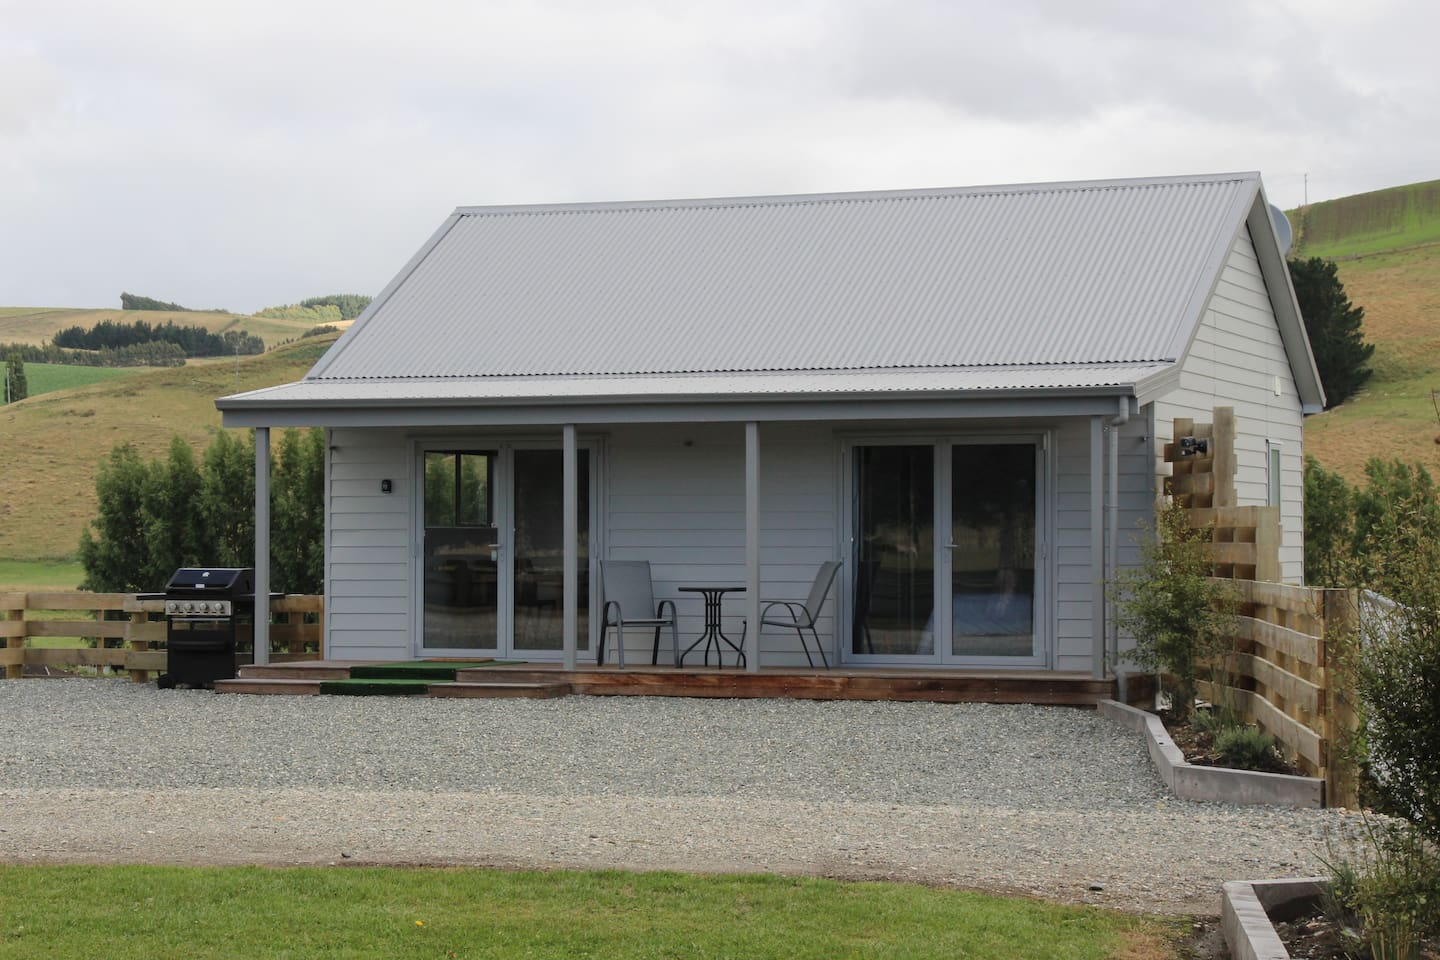 Self contained cottage in a rural setting